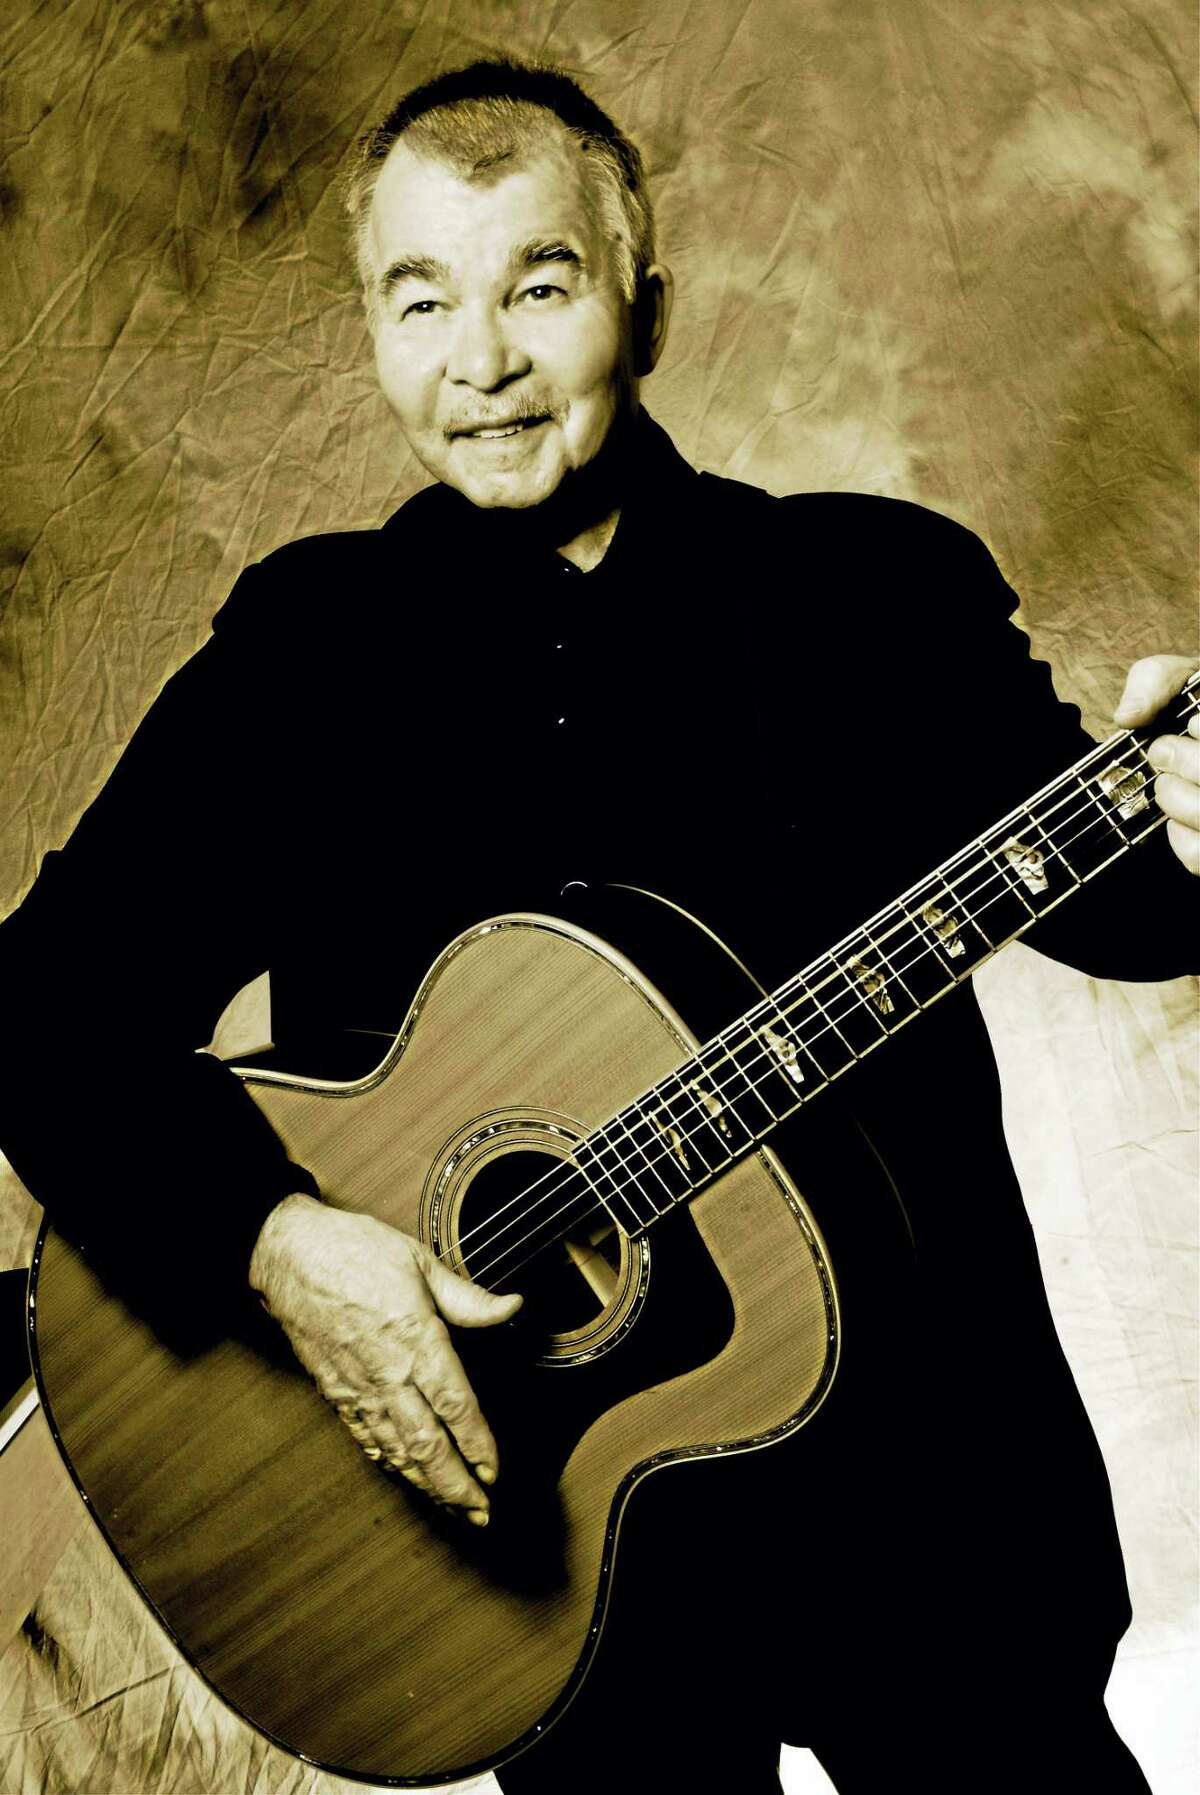 Singer John Prine is scheduled to perform at the Warner in September.